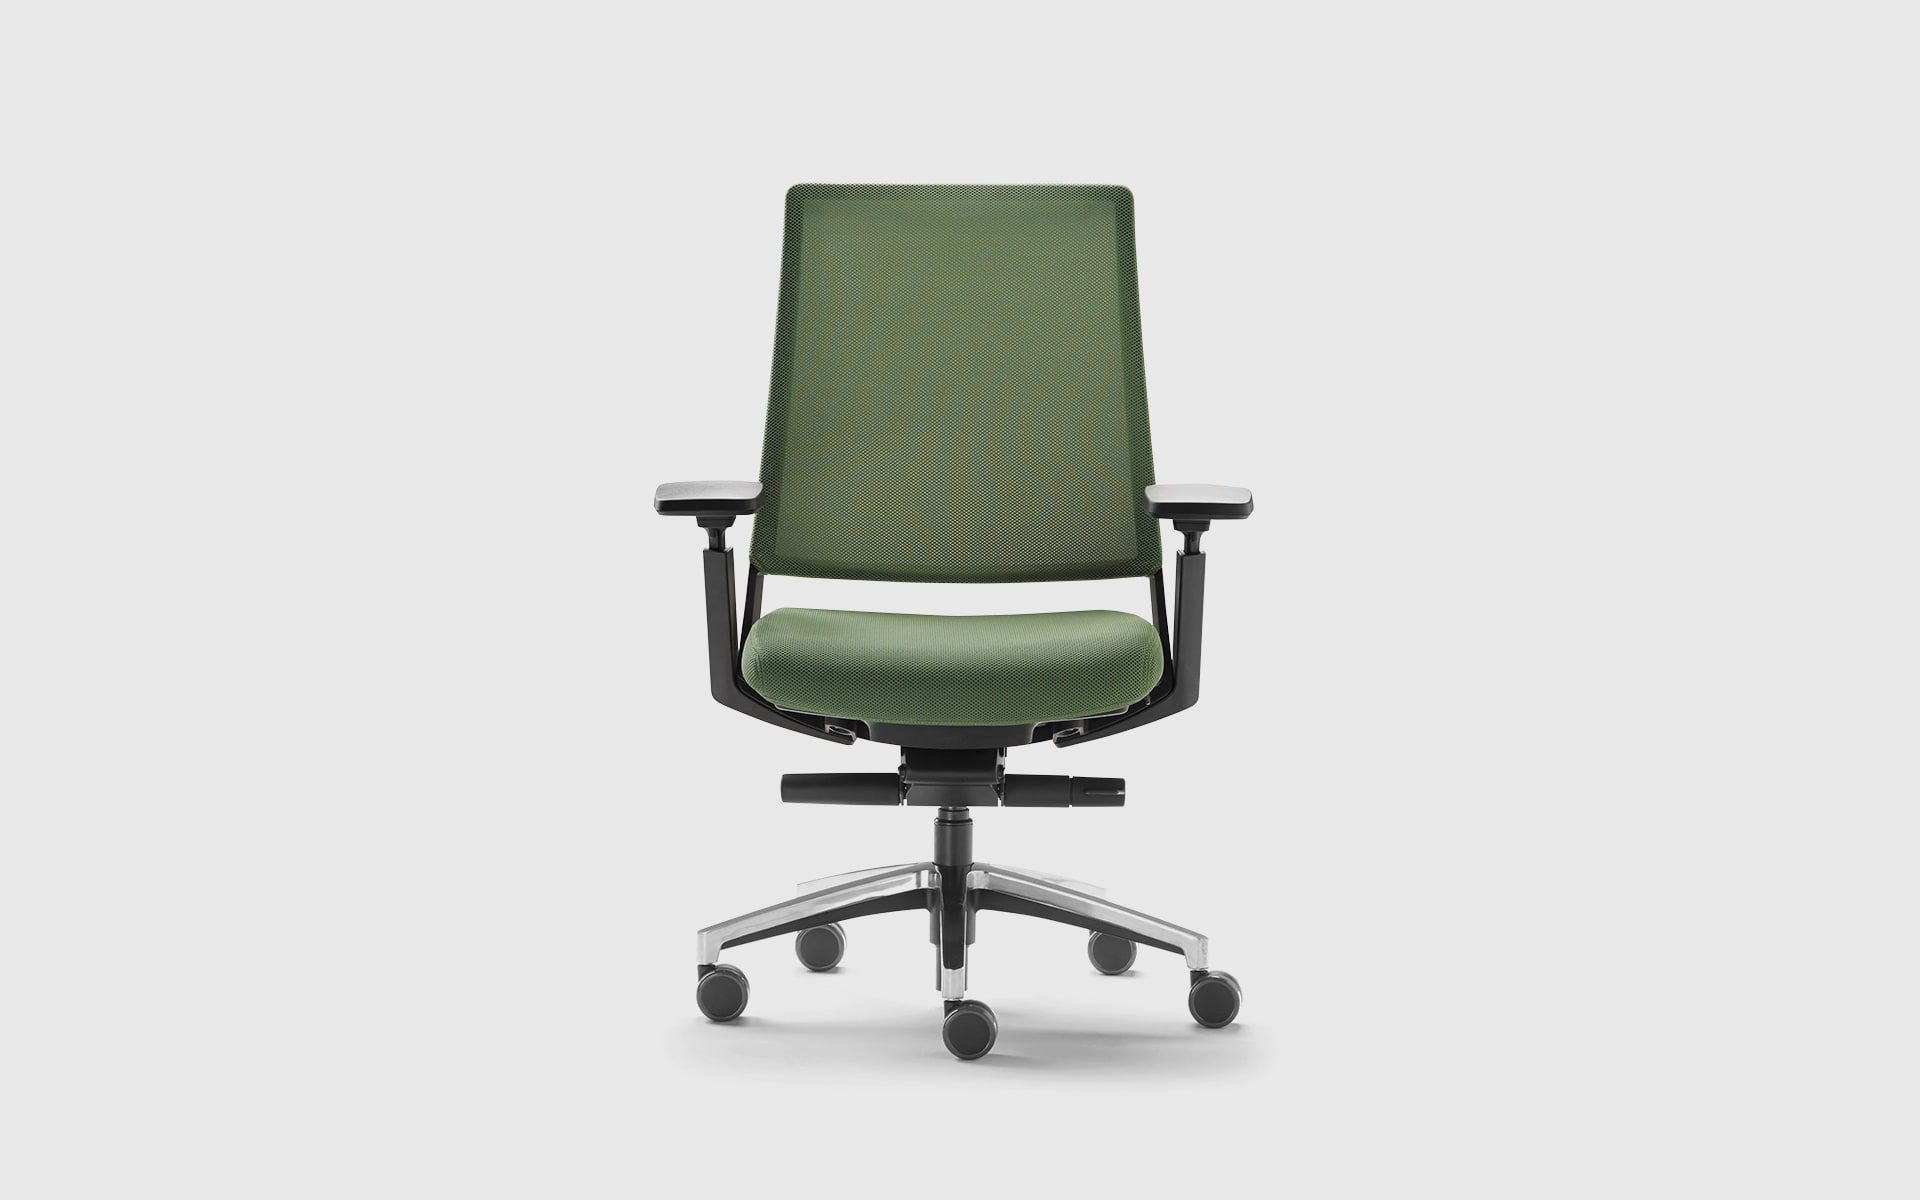 Forma5 Kineo office chair by ITO Design in pale green